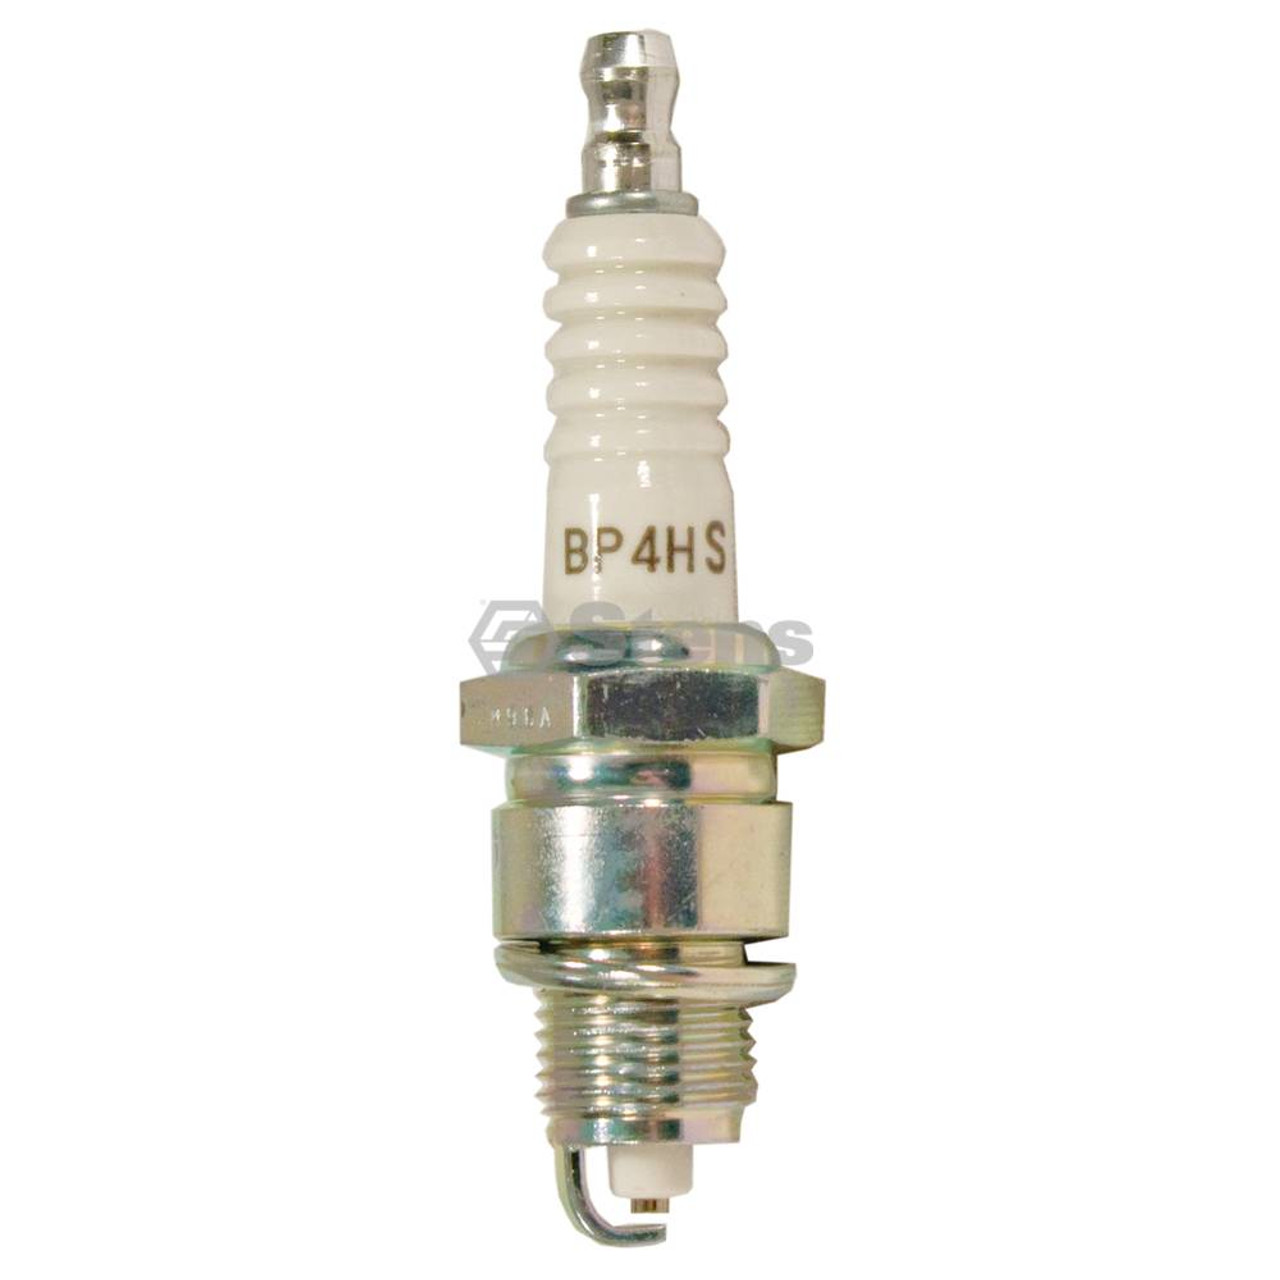 Spark Plug for Kawasaki 920702052, BP4HS, 92070-2052